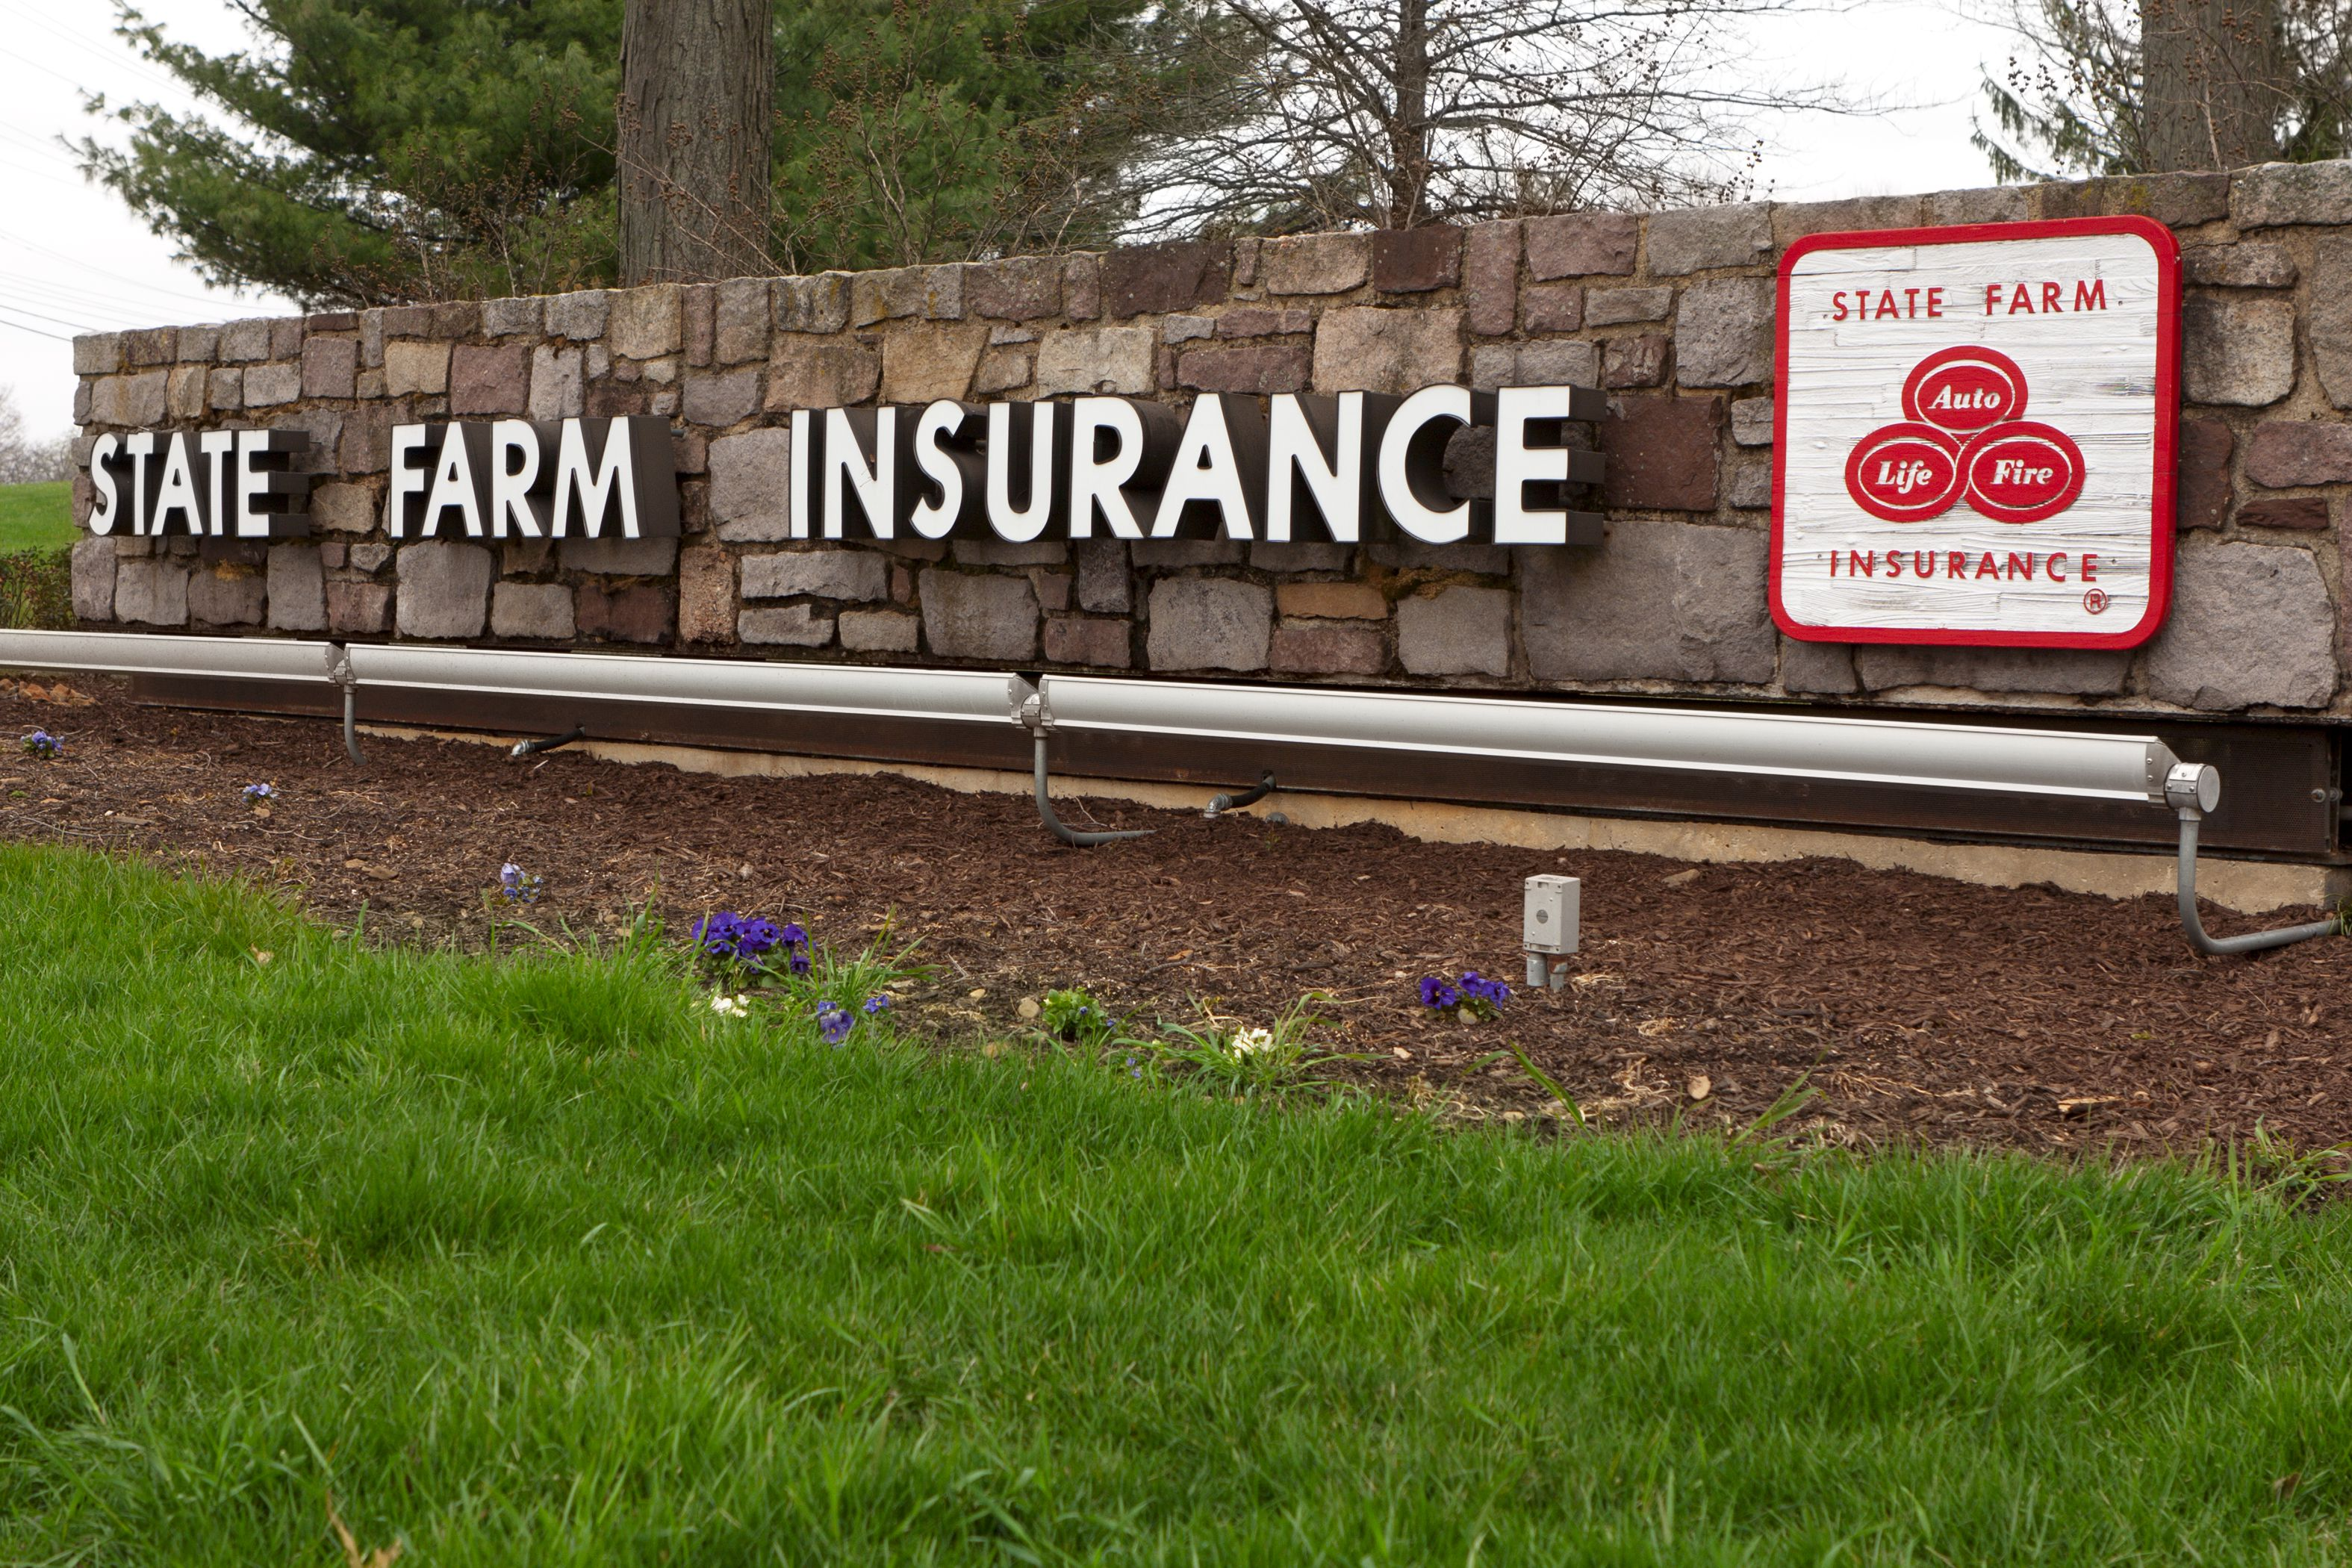 Aaa Life Insurance Reviews >> Is State Farm Auto Insurance Good For You A Review